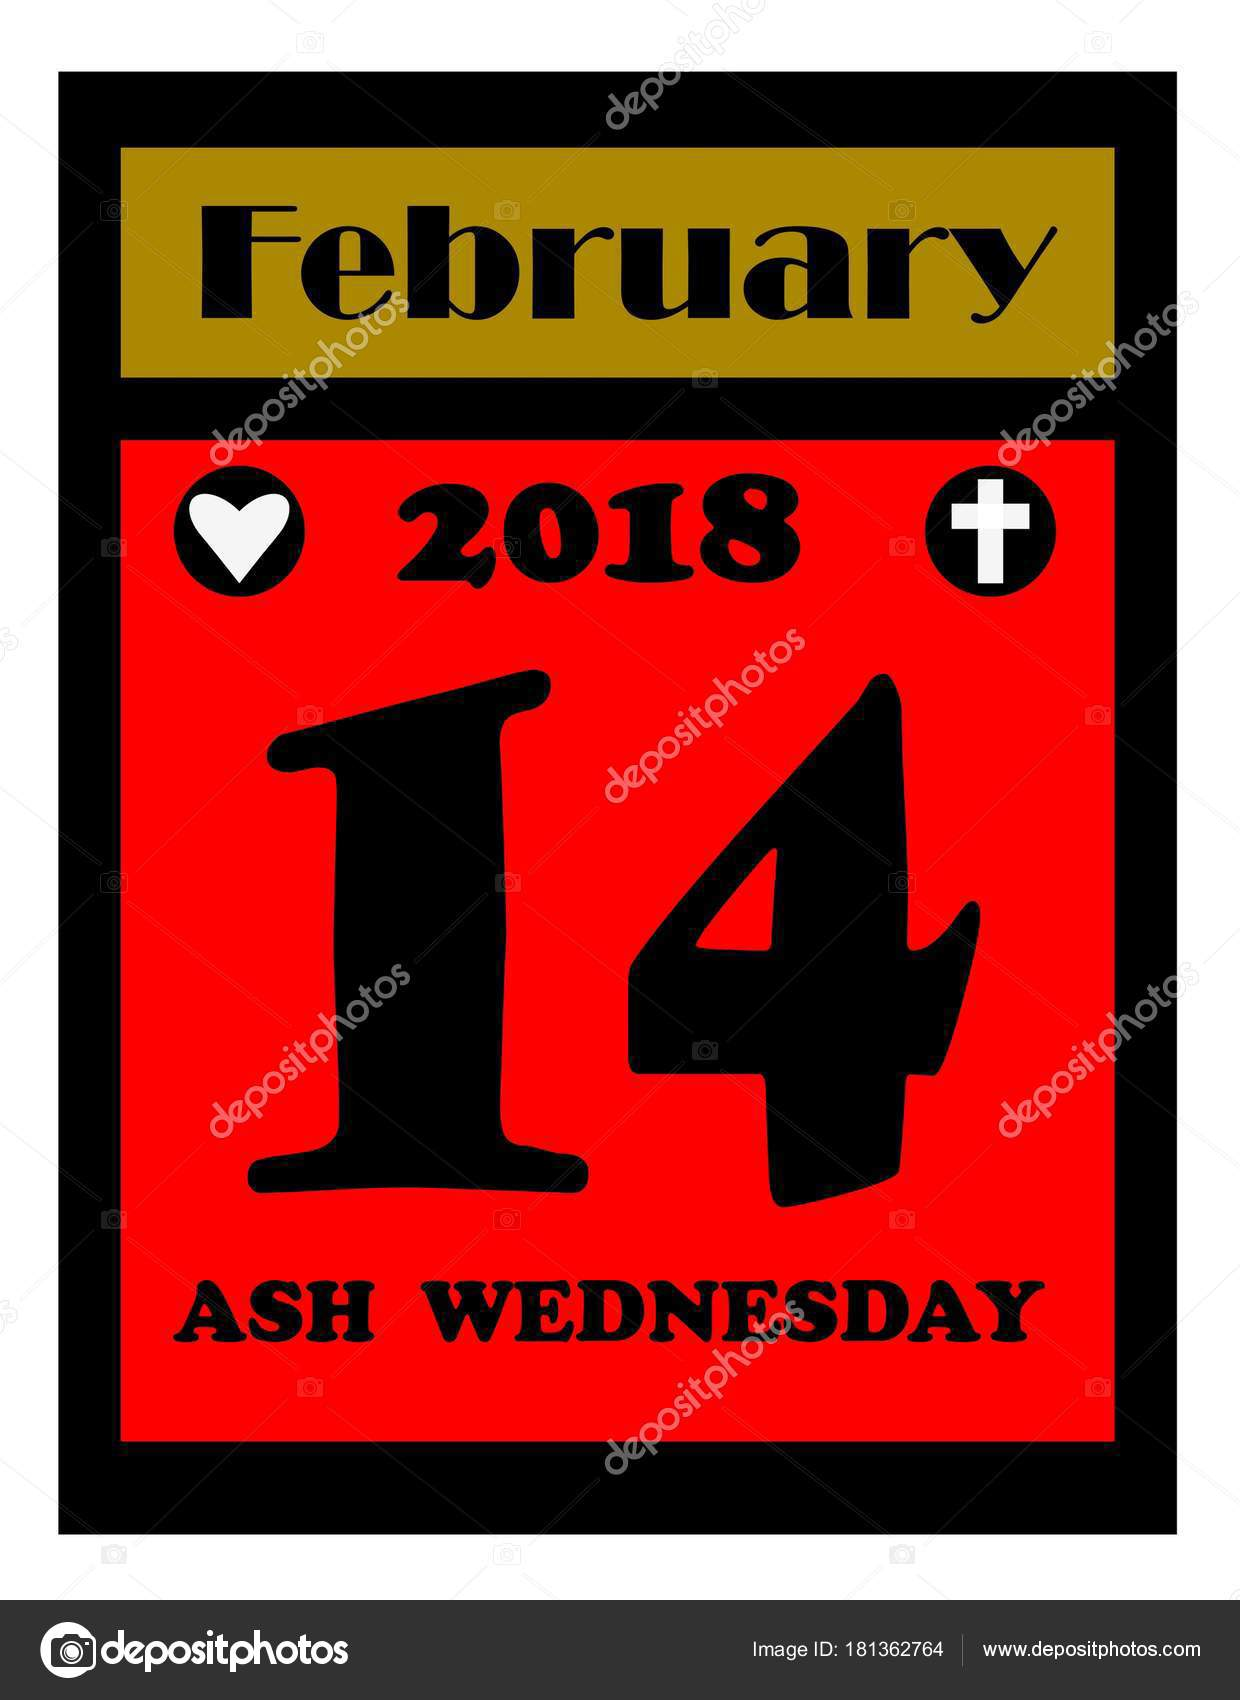 Image result for ash wednesday valentines 2018